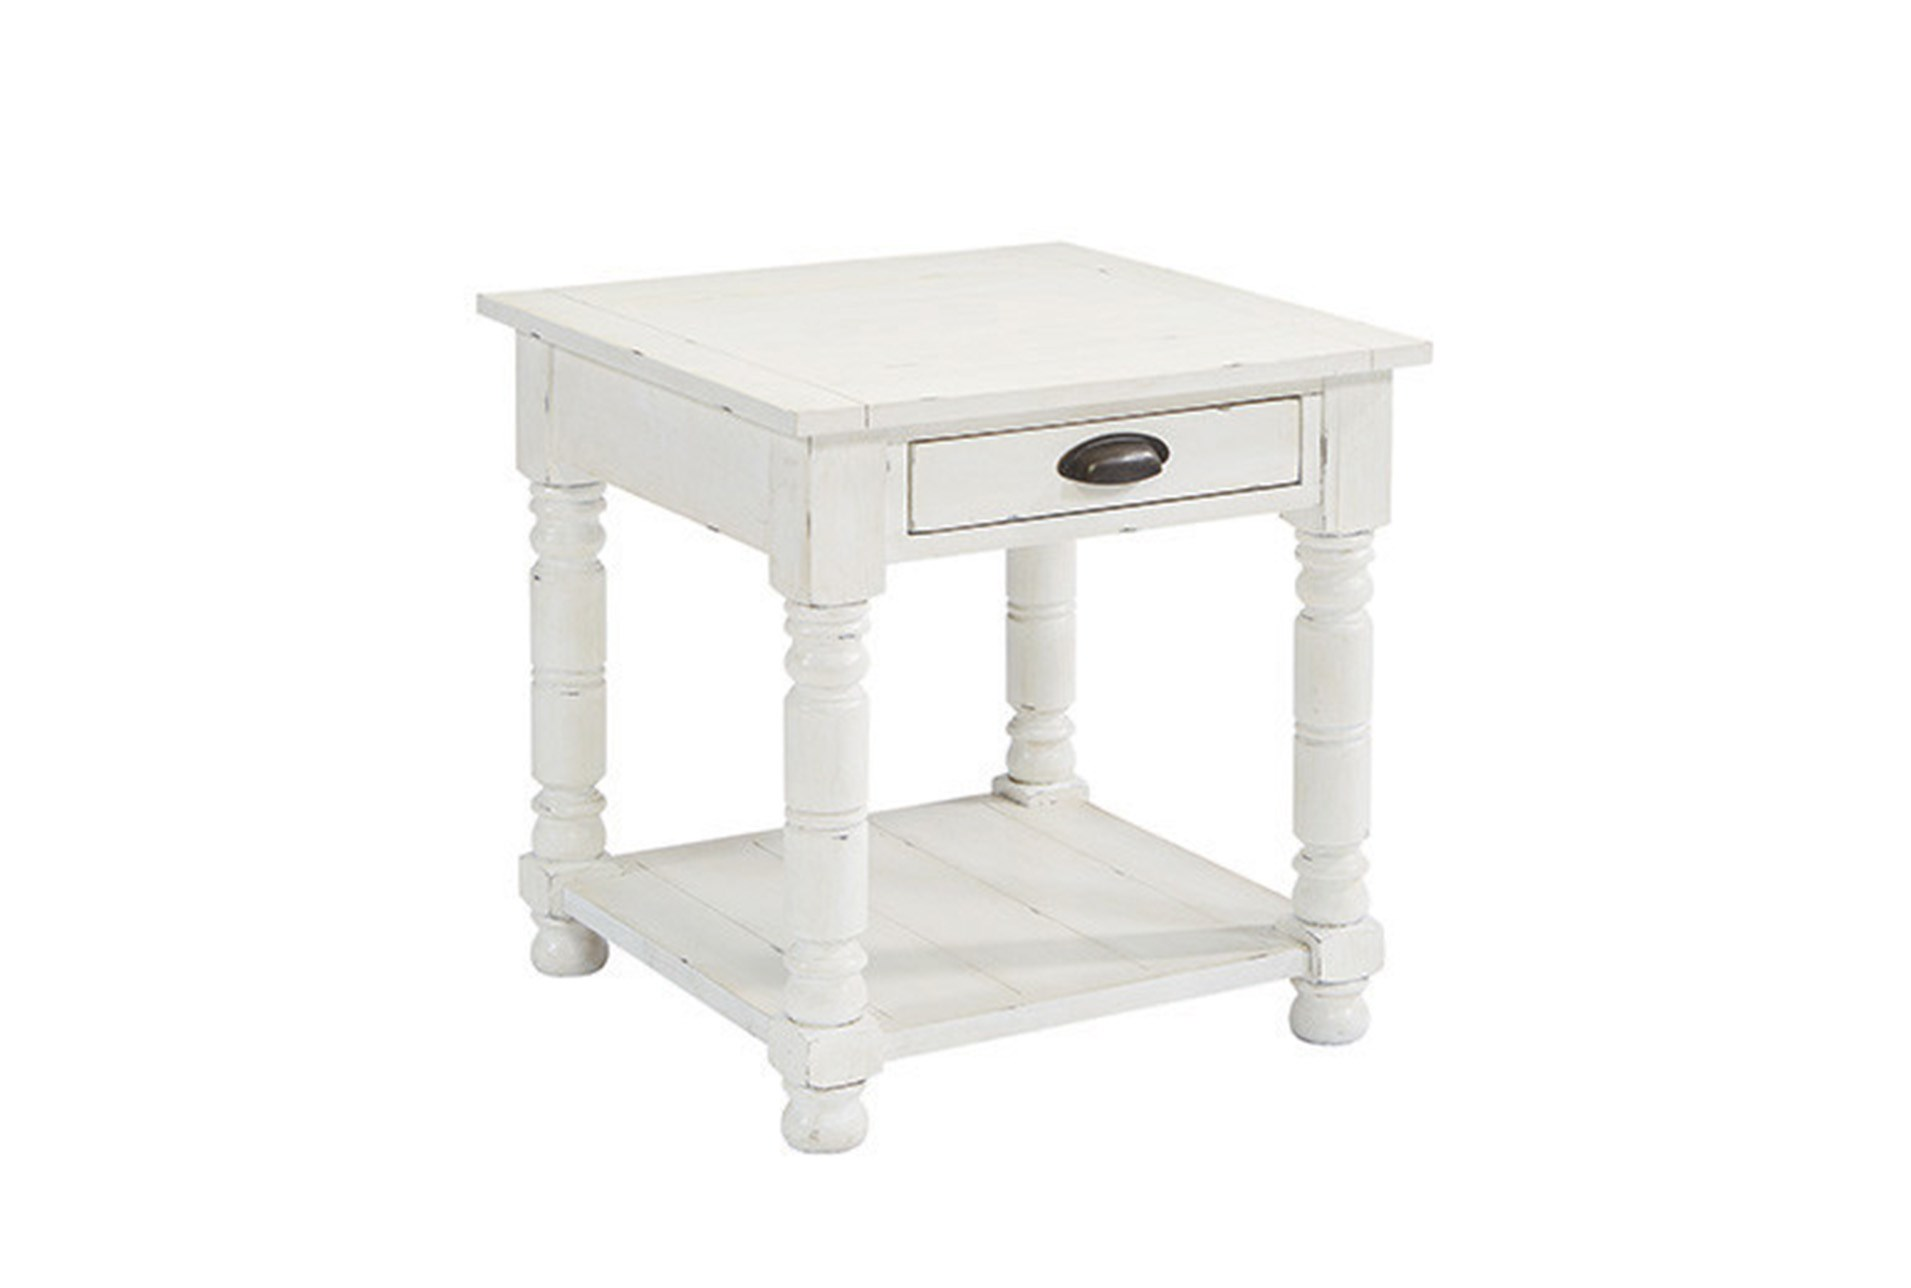 white free garden manor magnolia today home antique overstock shipping end product table